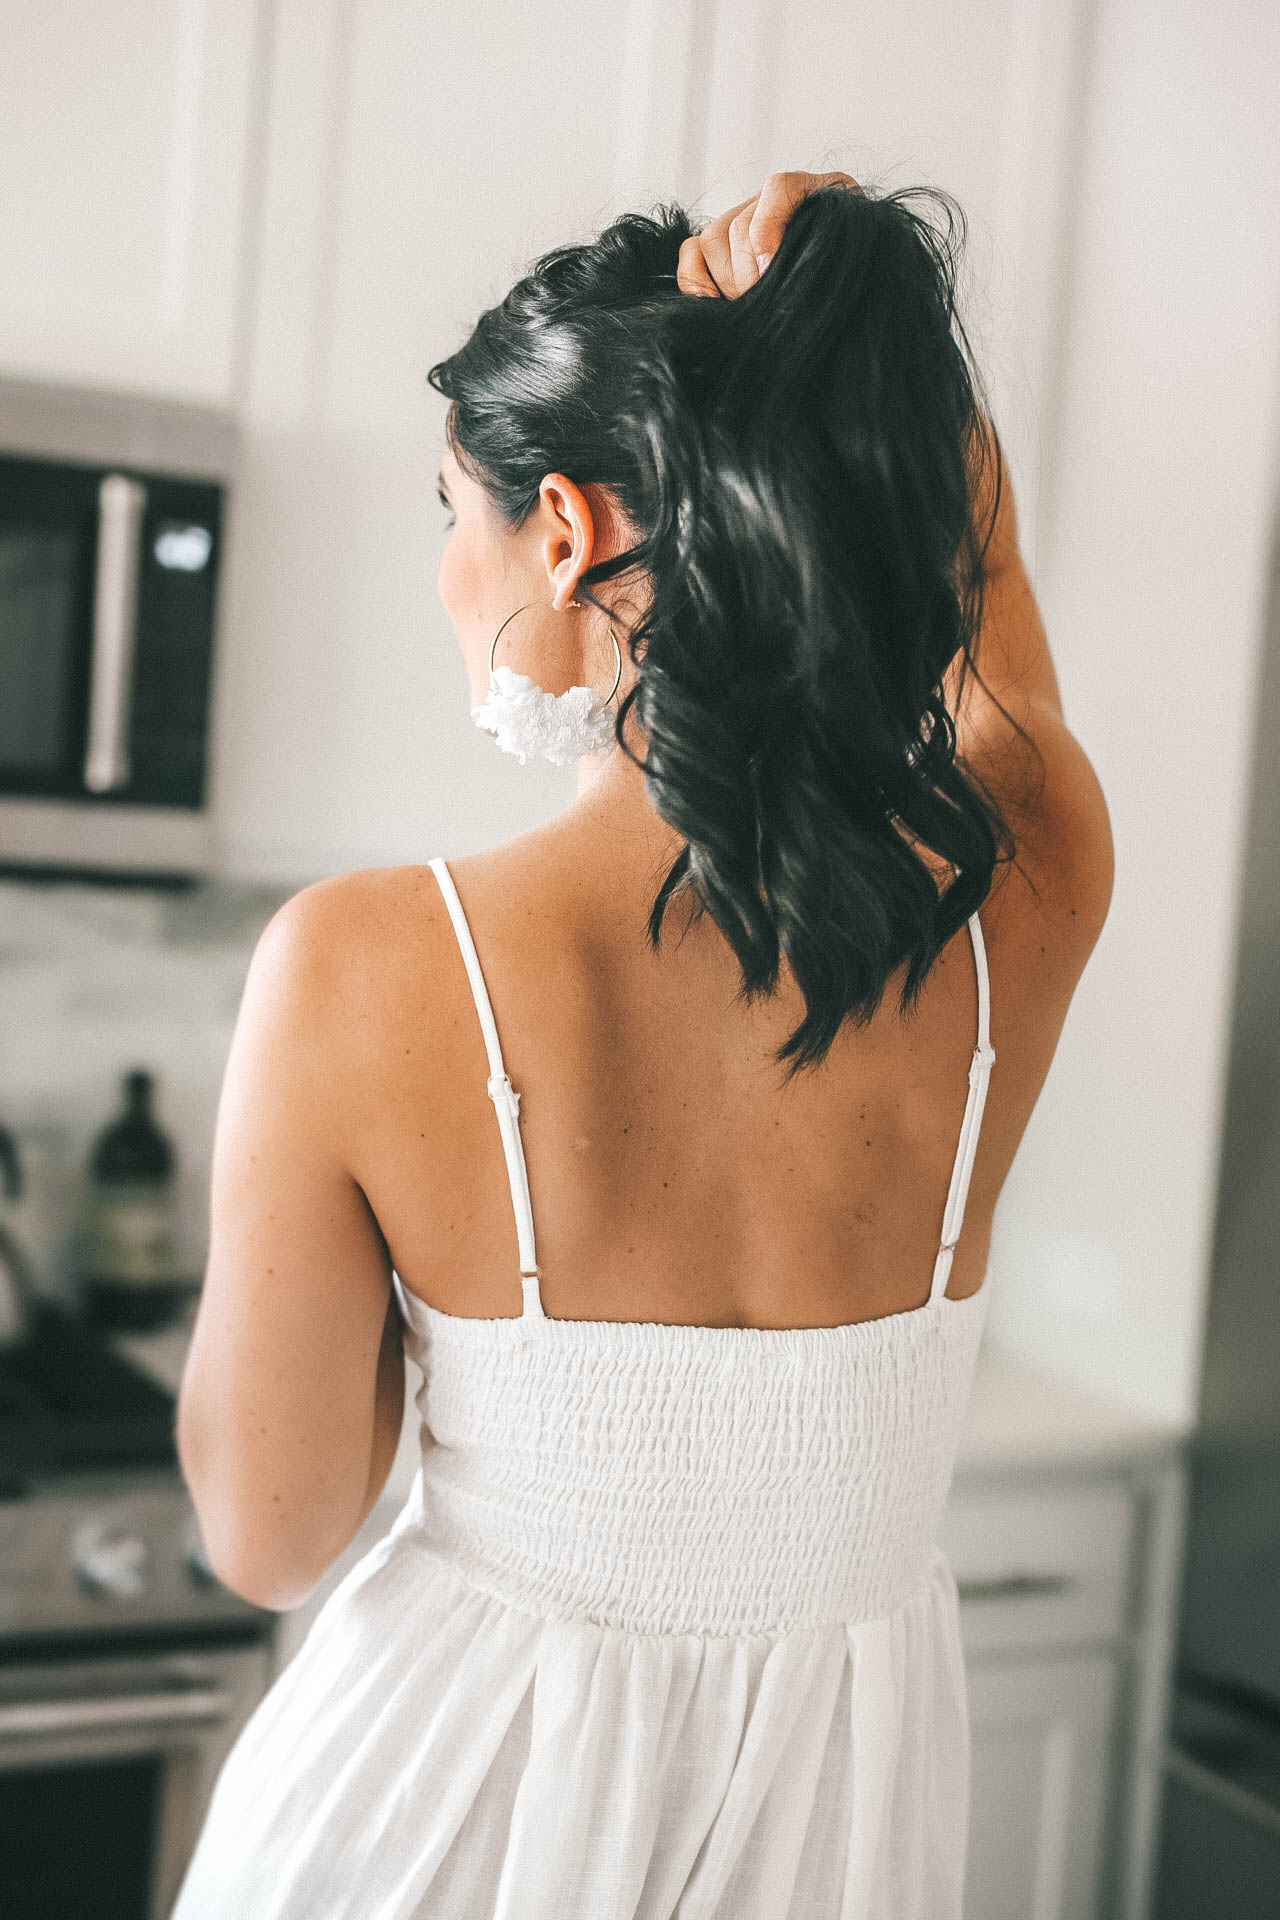 Best Hair Growth Products by popular Austin beauty blog, Dressed to Kill: image of a woman wearing a white spaghetti strap dress and white pom earrings and holding her hair up in her hand.